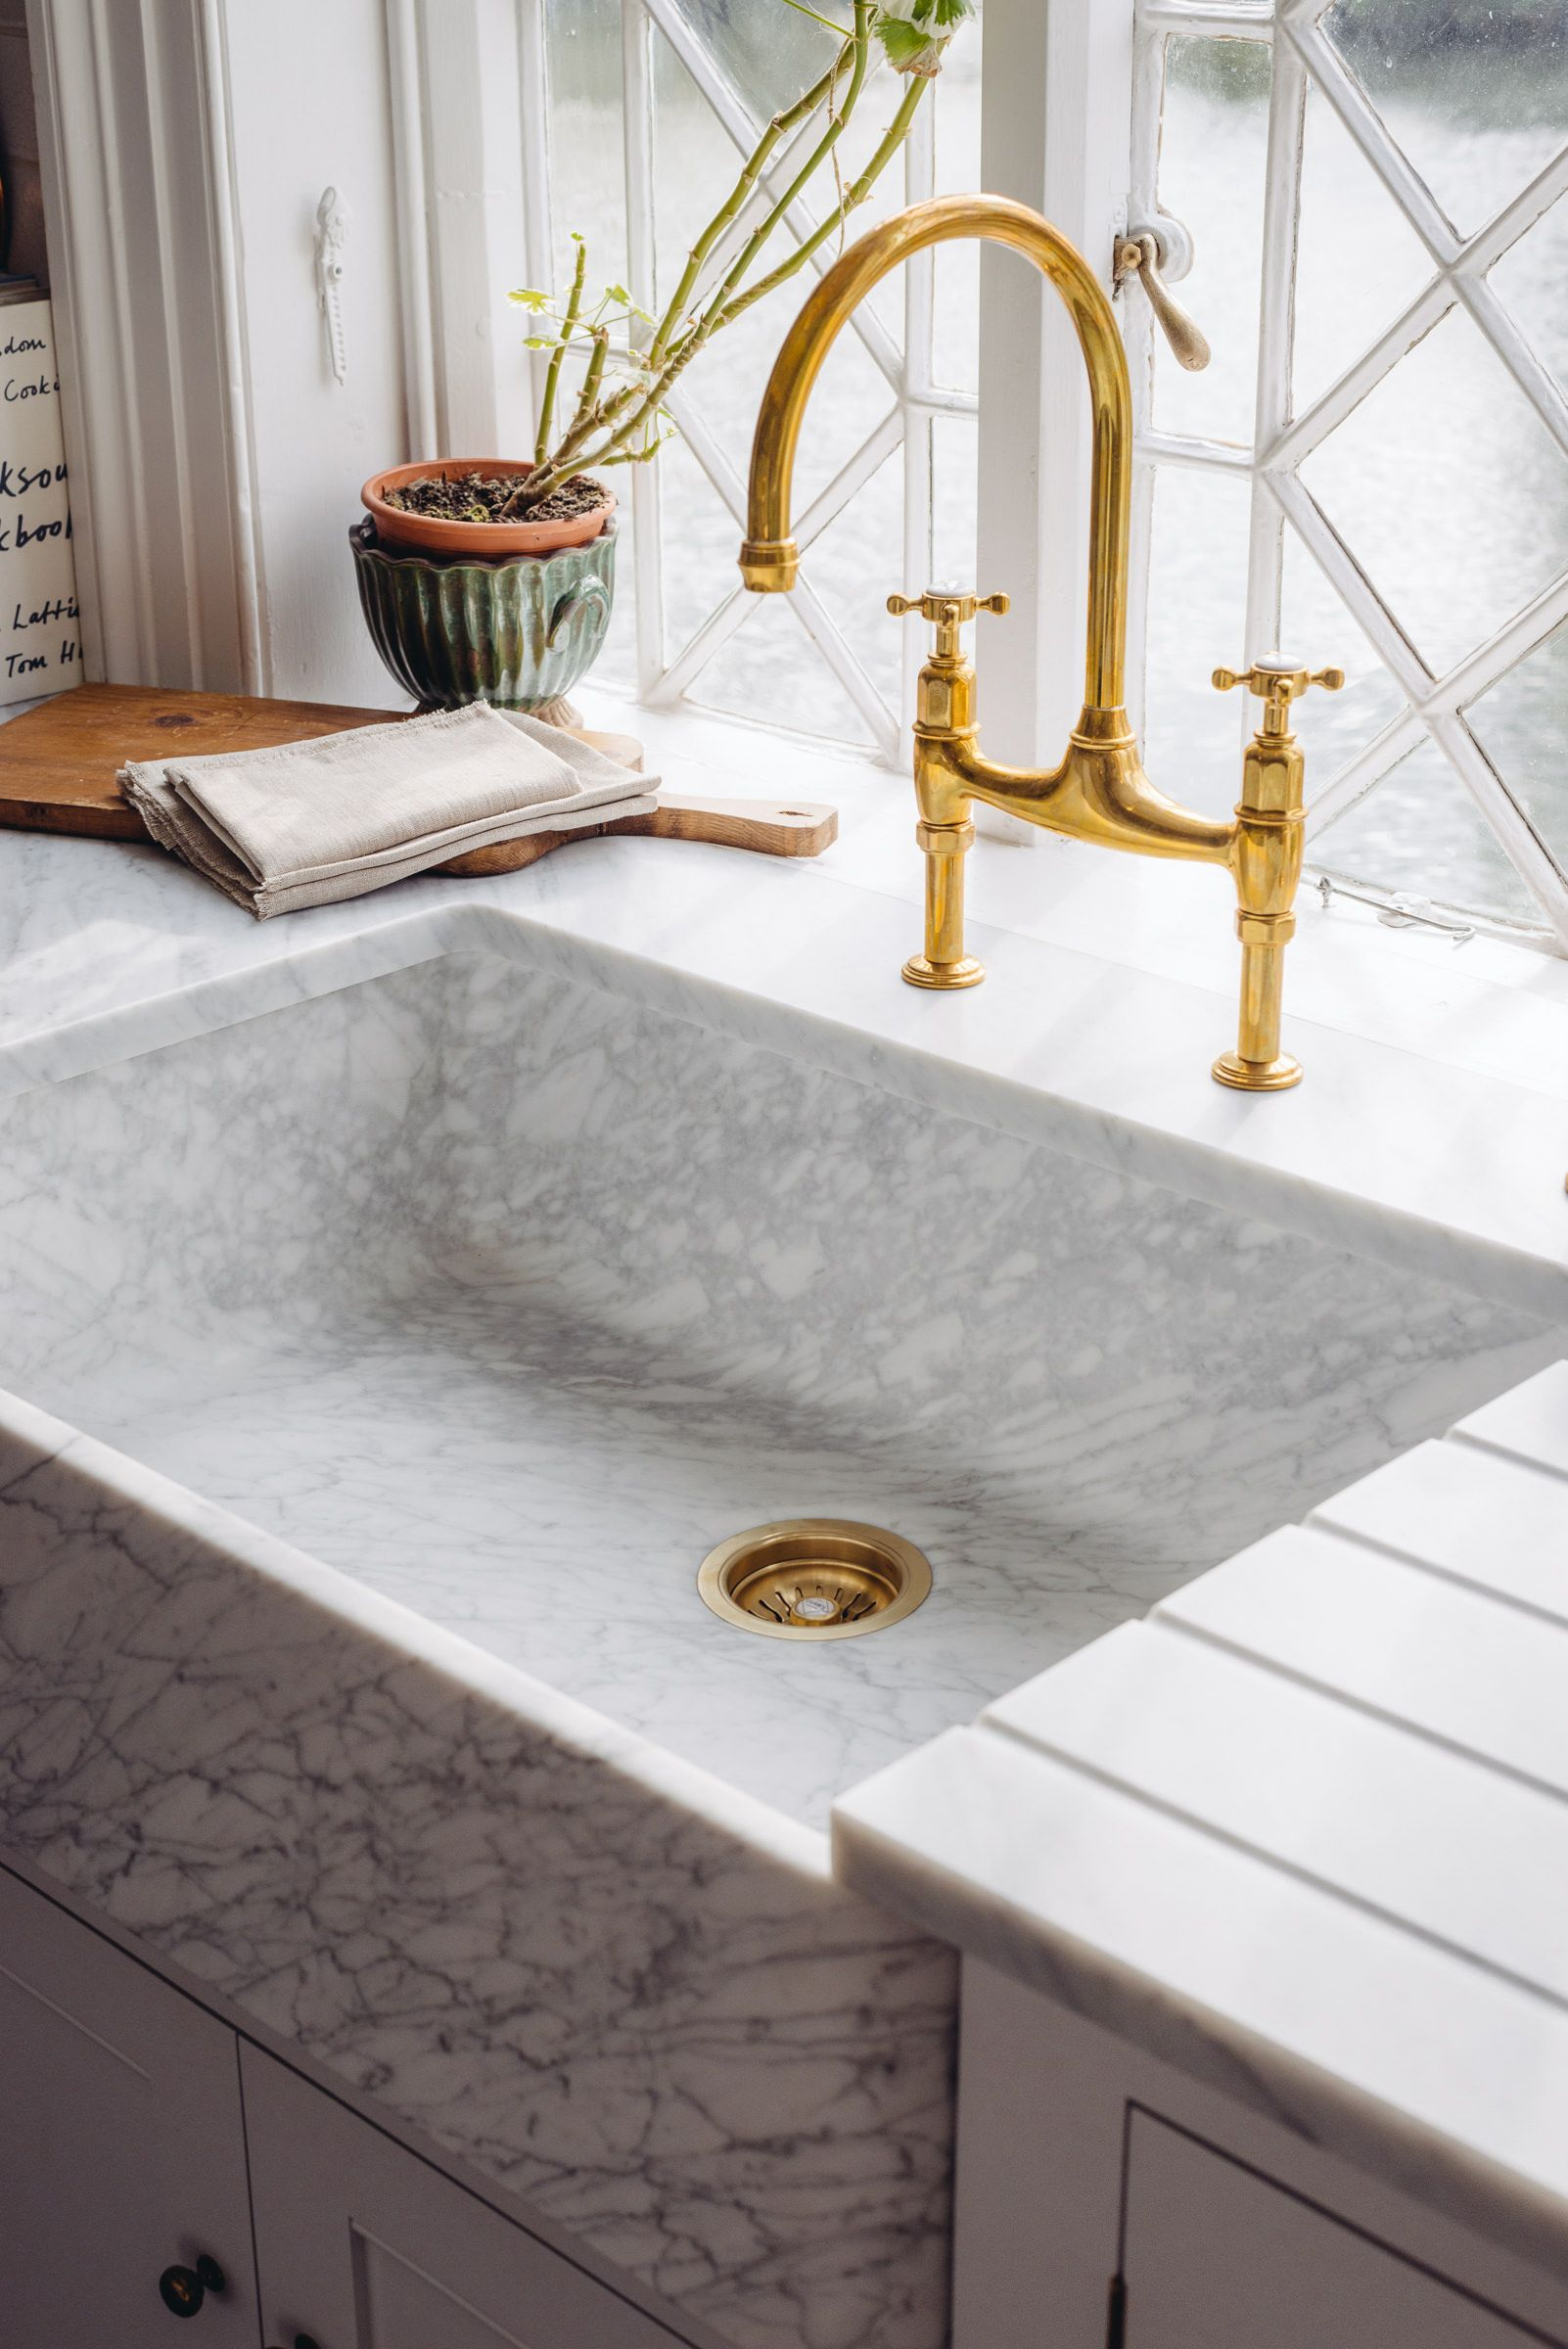 Our Carrara marble sinks are the newest additions to our